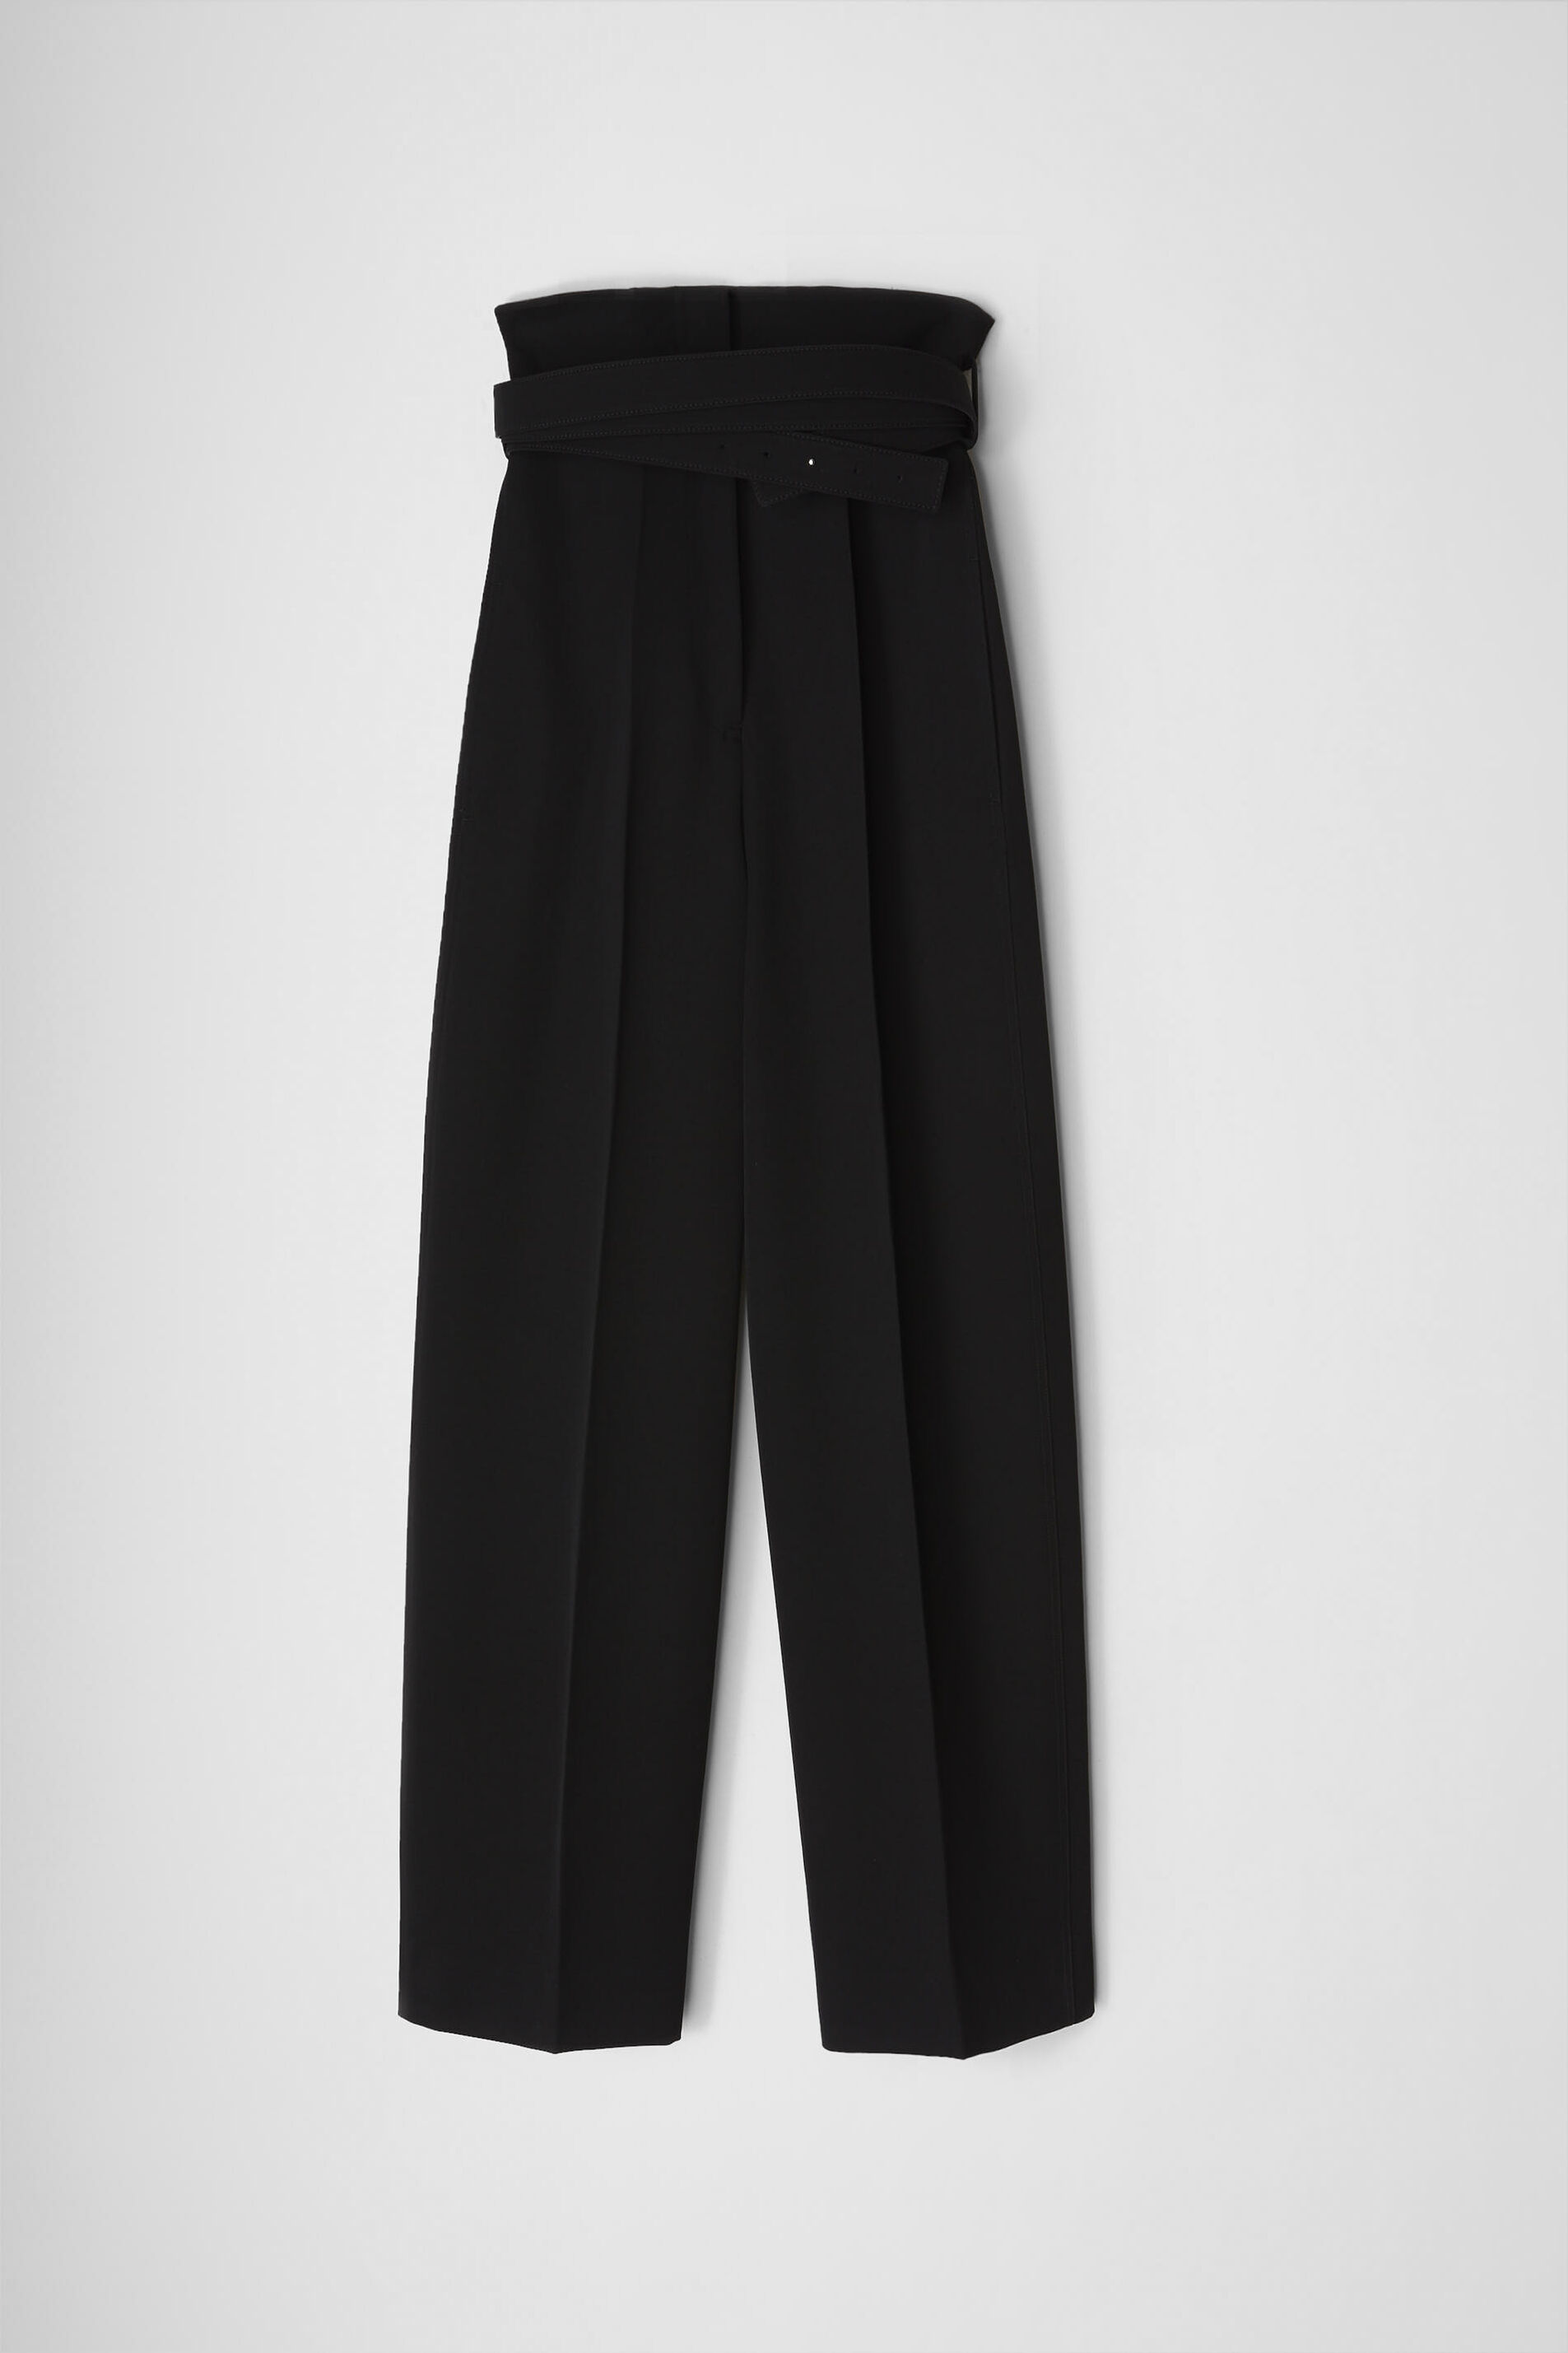 Tailored Trousers, black, large